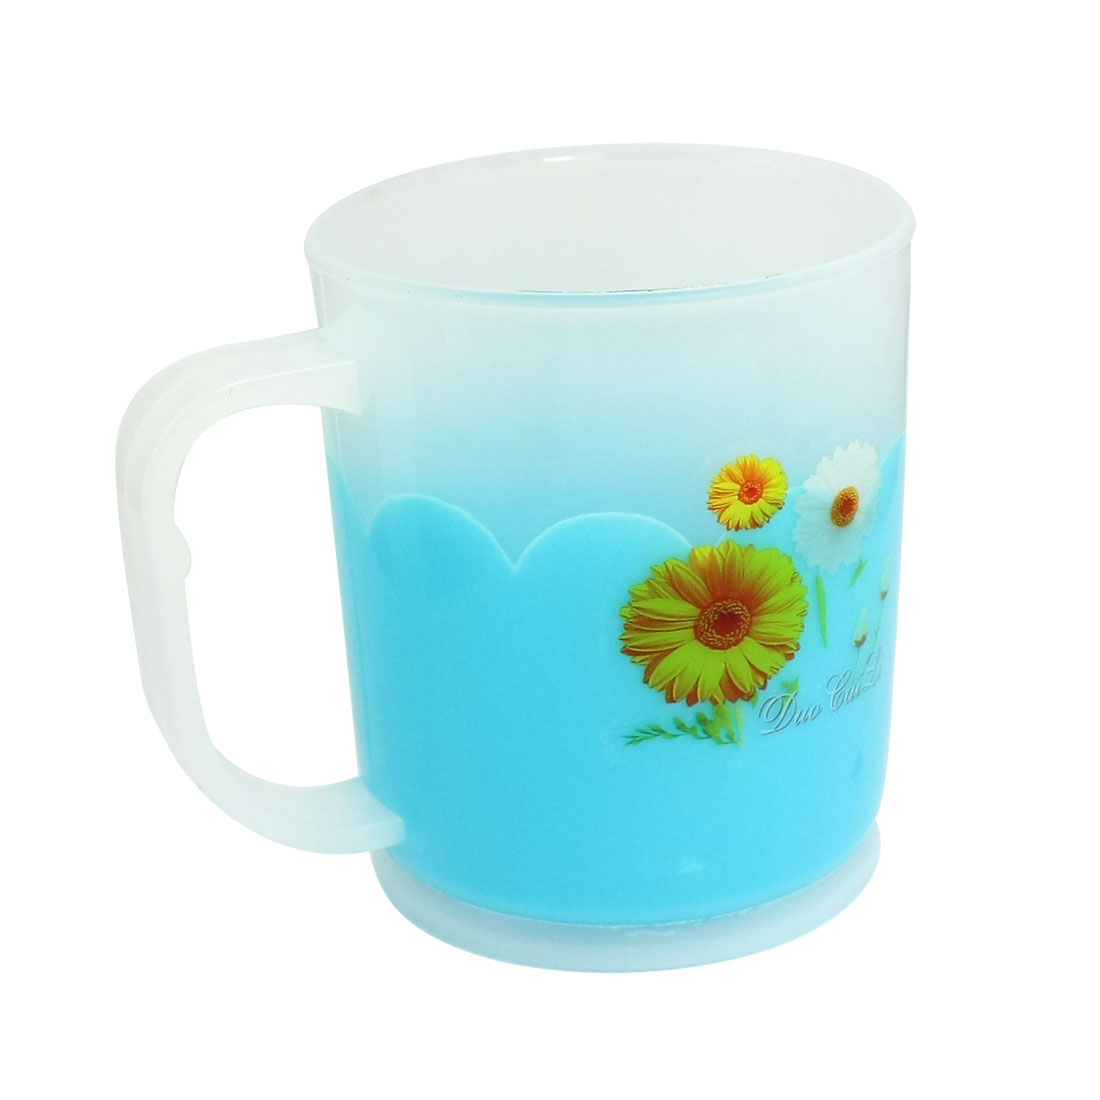 Home-Bathroom-Blue-Sunflowers-Print-Plastic-Cylinder-Toothbrush-Cup